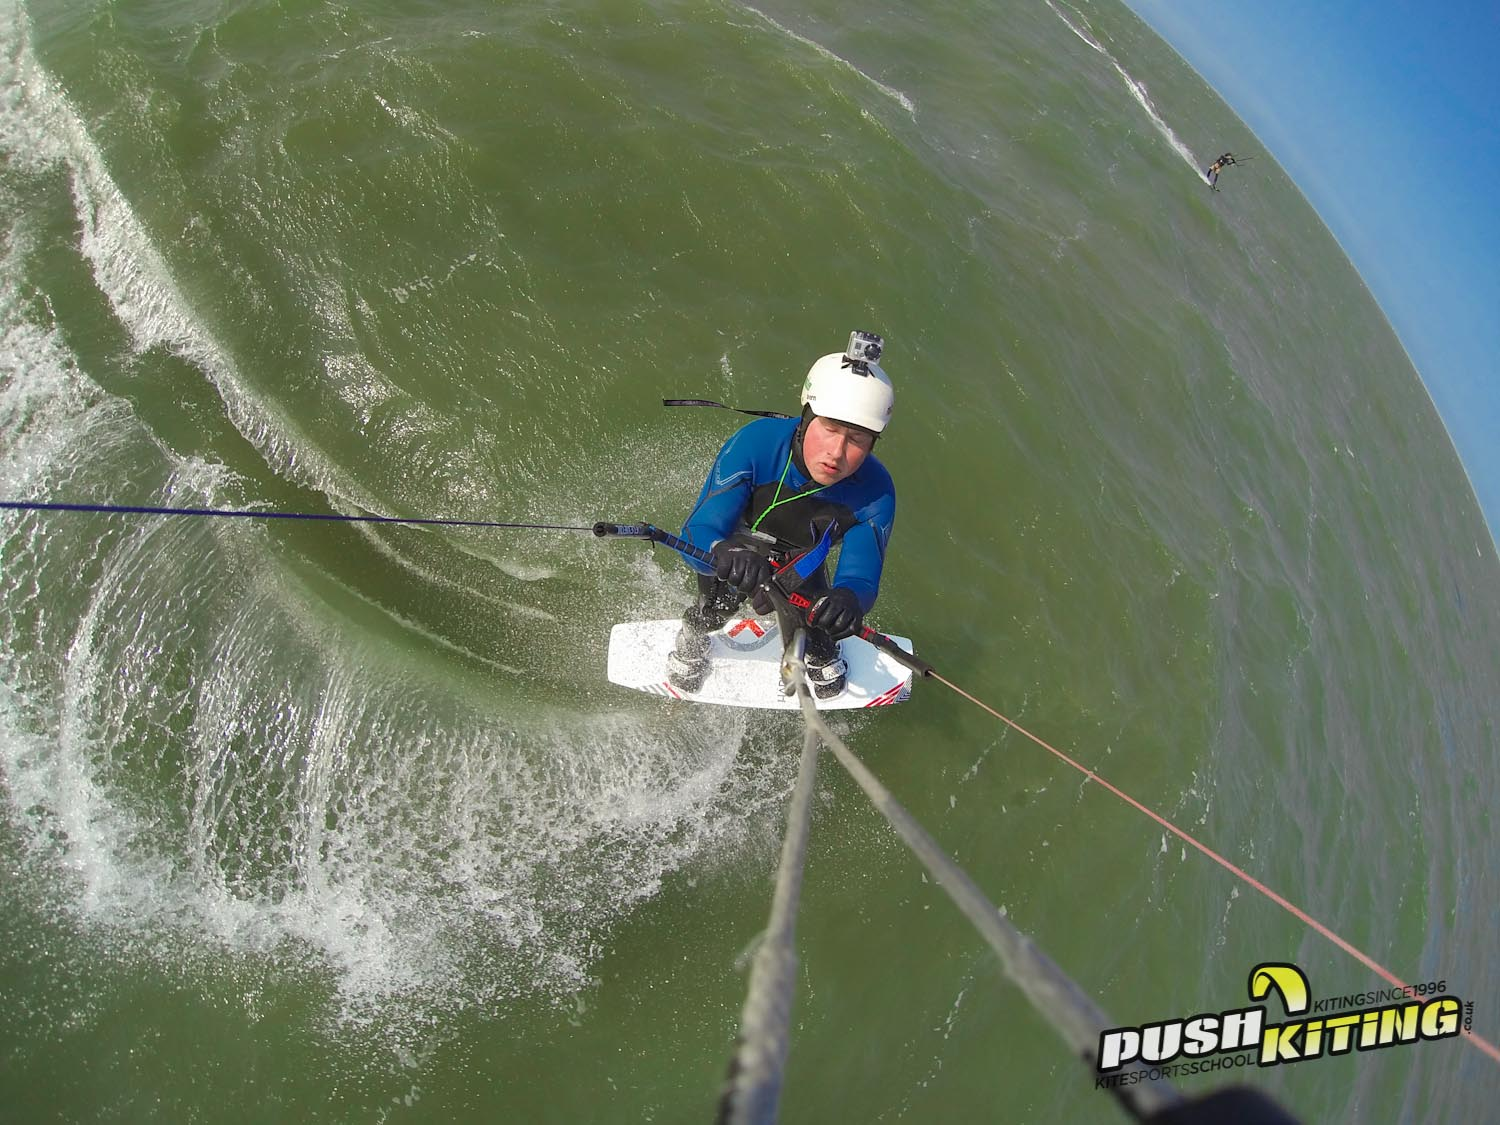 Advanced kitesurf lessons from Coach kitesurfing Essex 2015